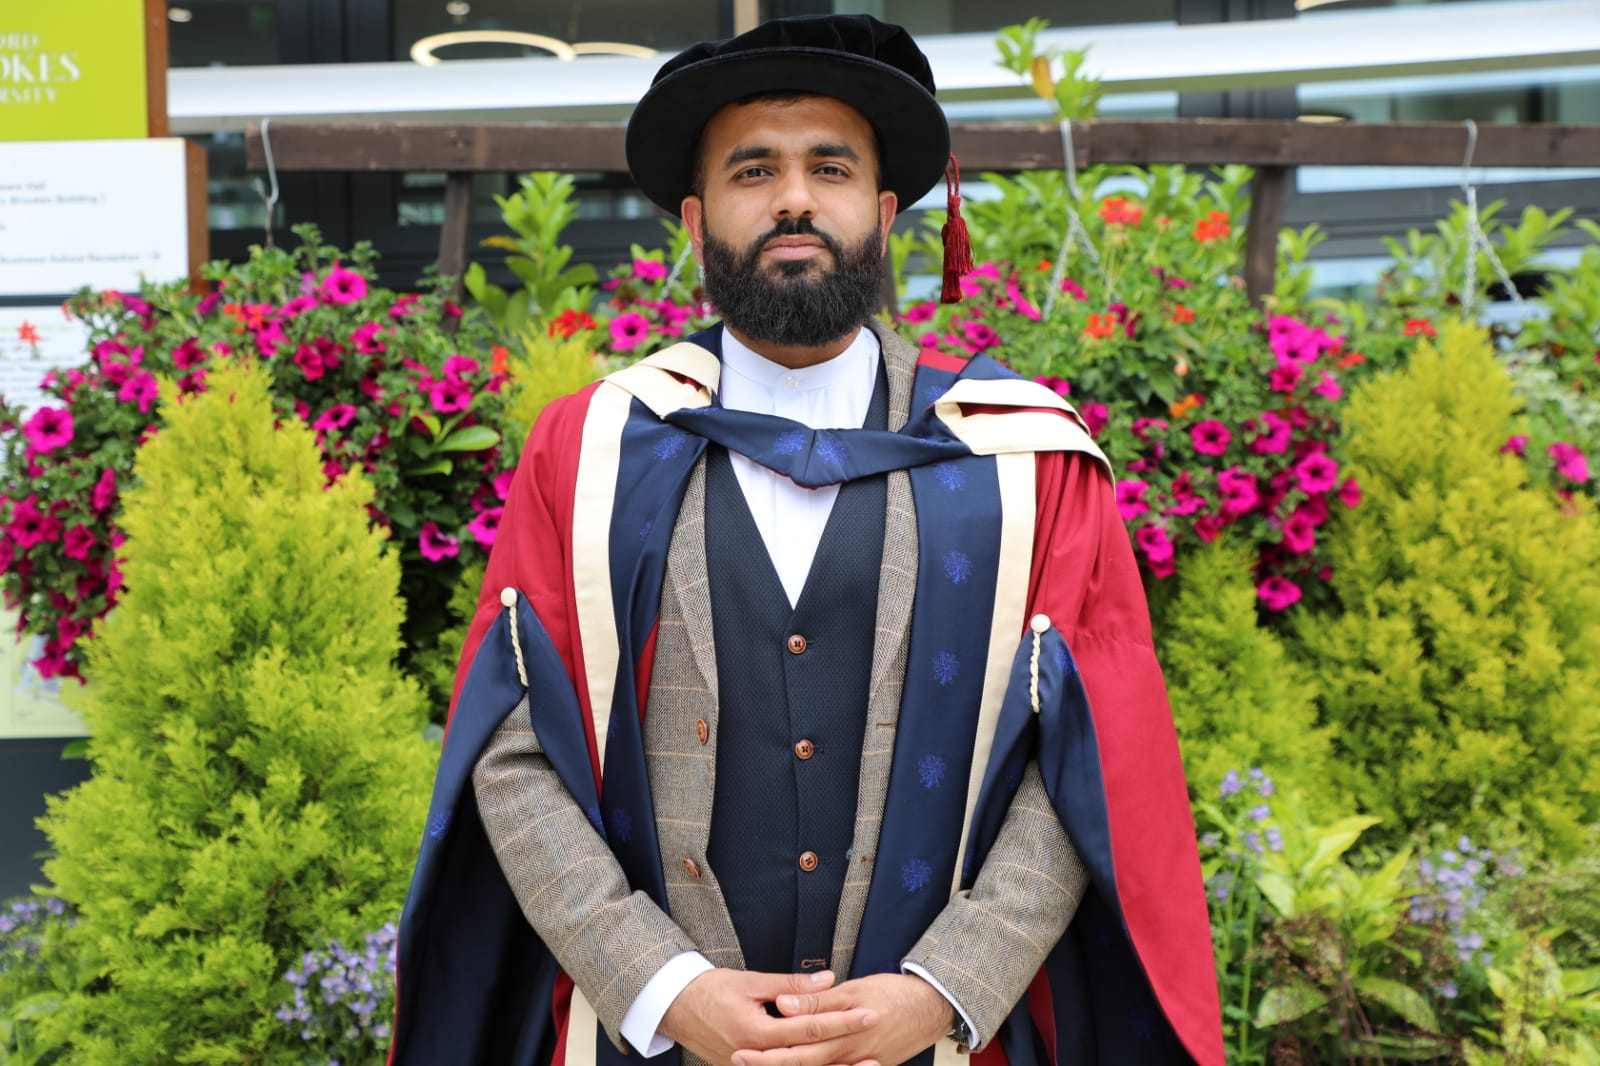 Hussain Manawer receiving a doctorate of arts from the University of Oxford Brooke's.